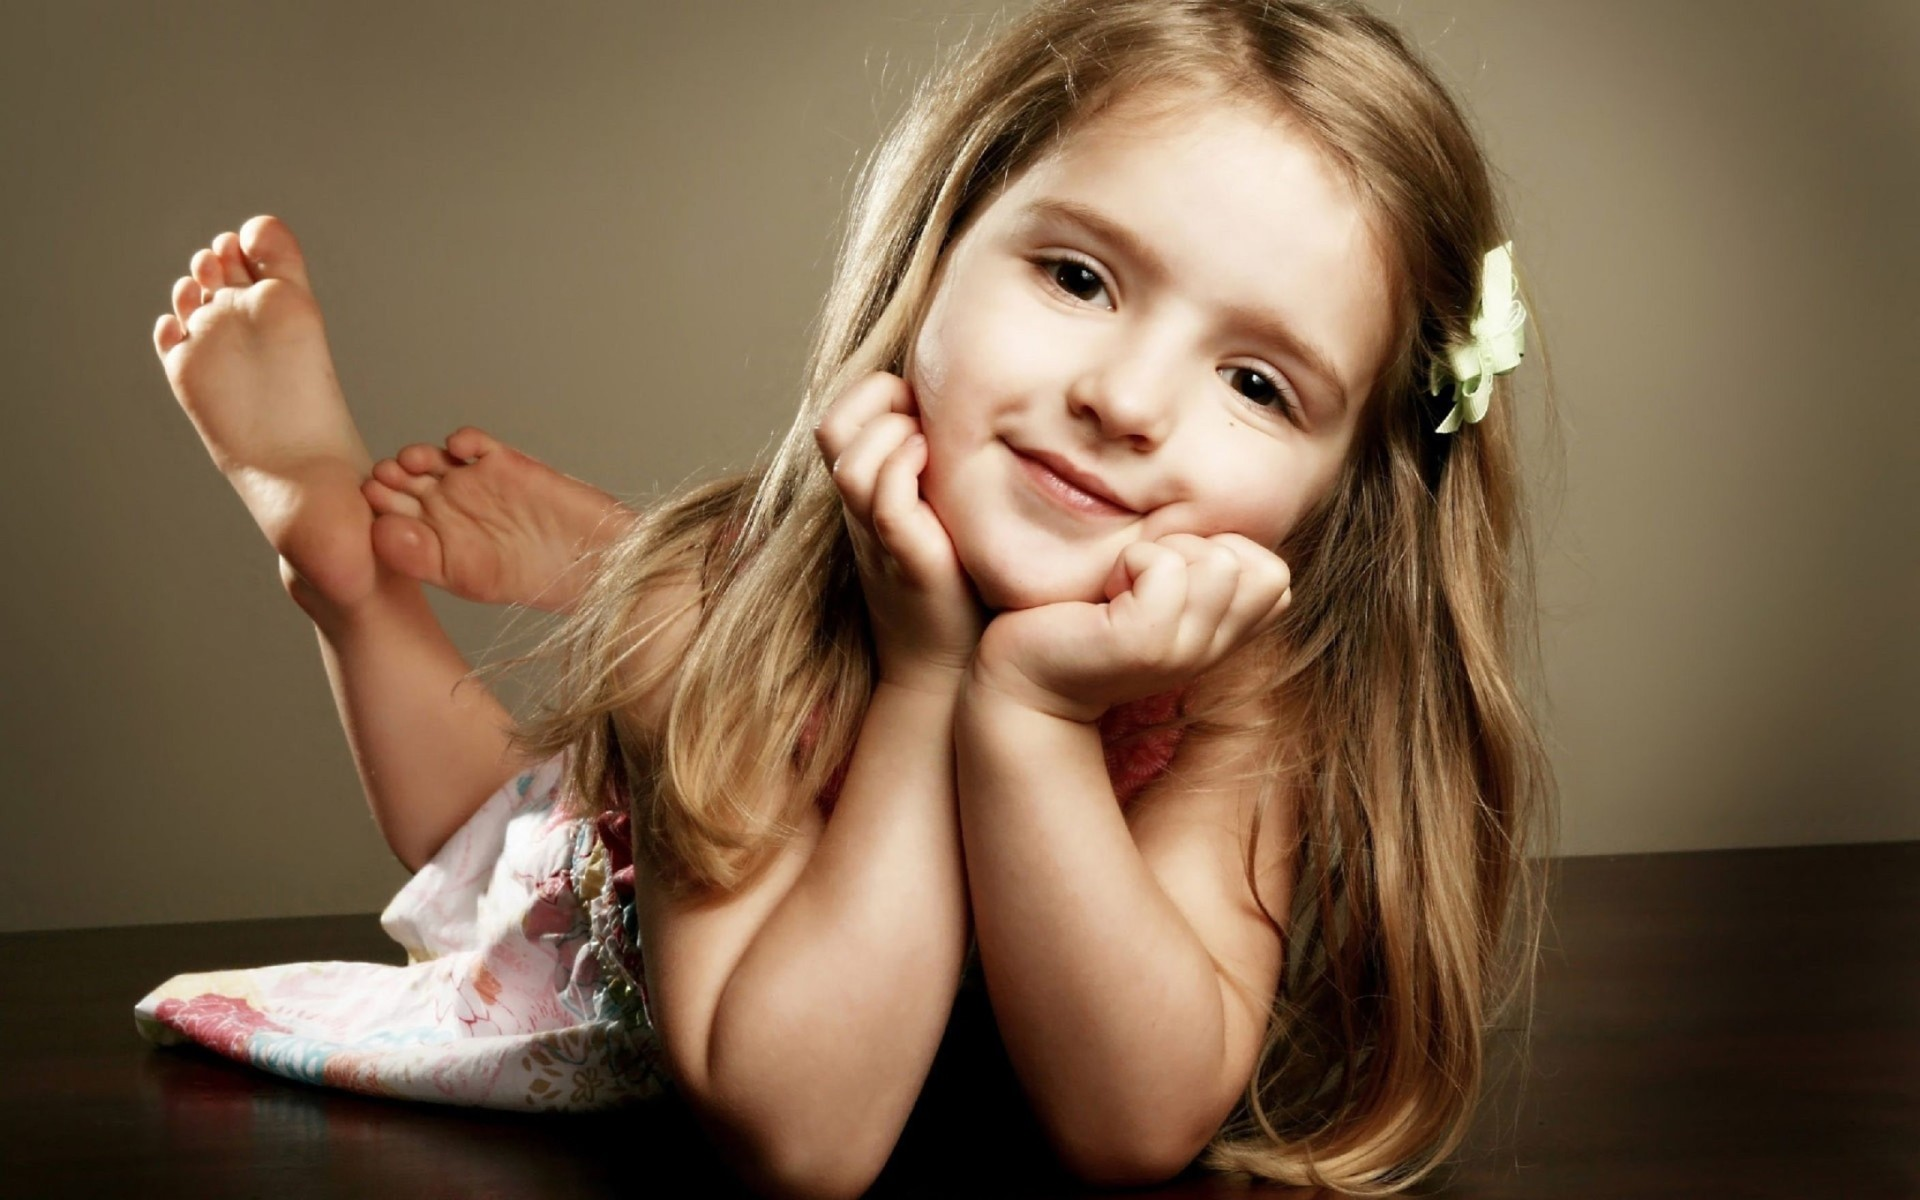 Pretty Cute Baby Girl Nice Wallpaper